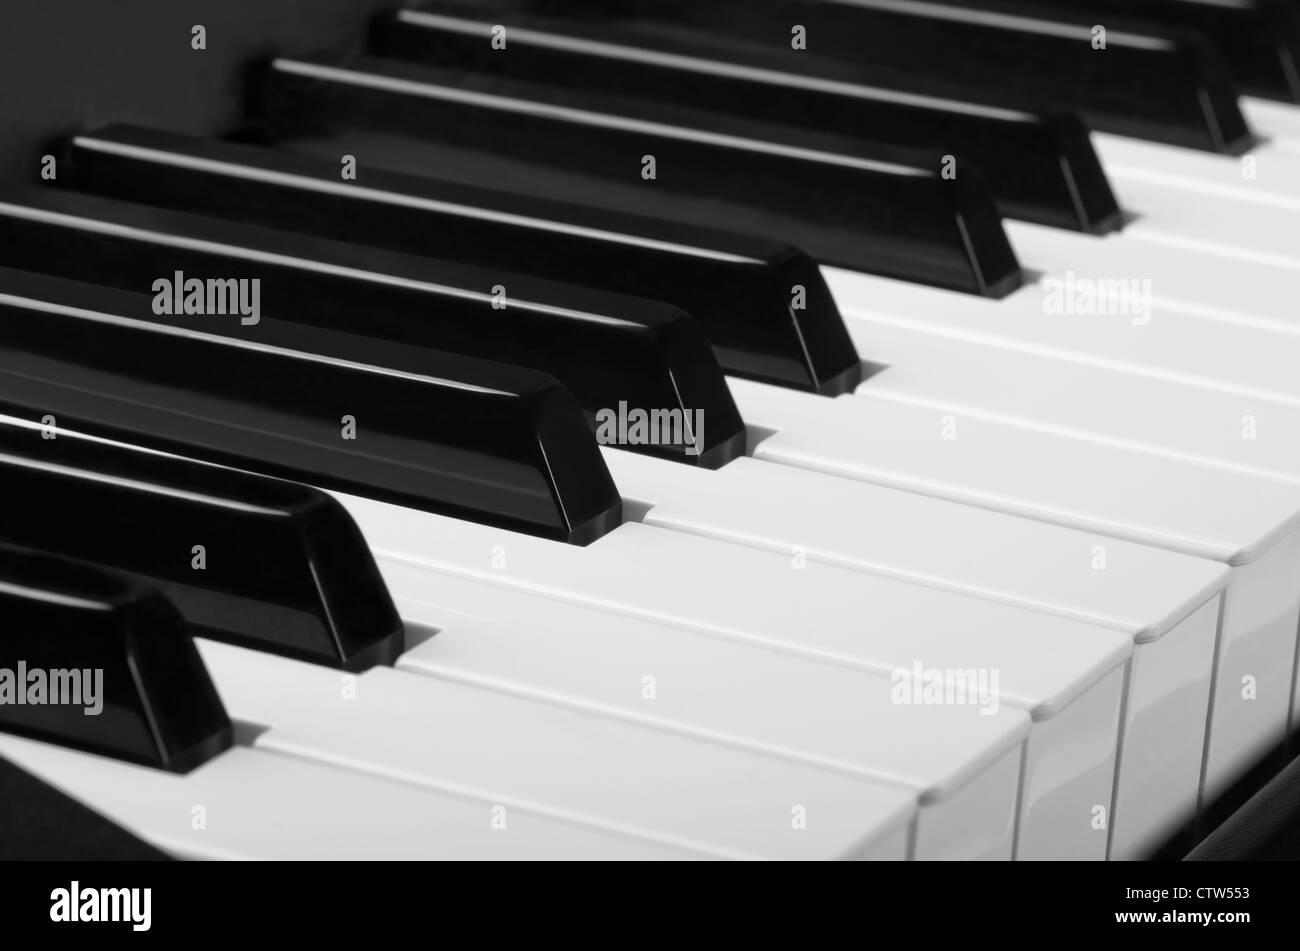 White and black keys. Close up of piano keyboard - Stock Image